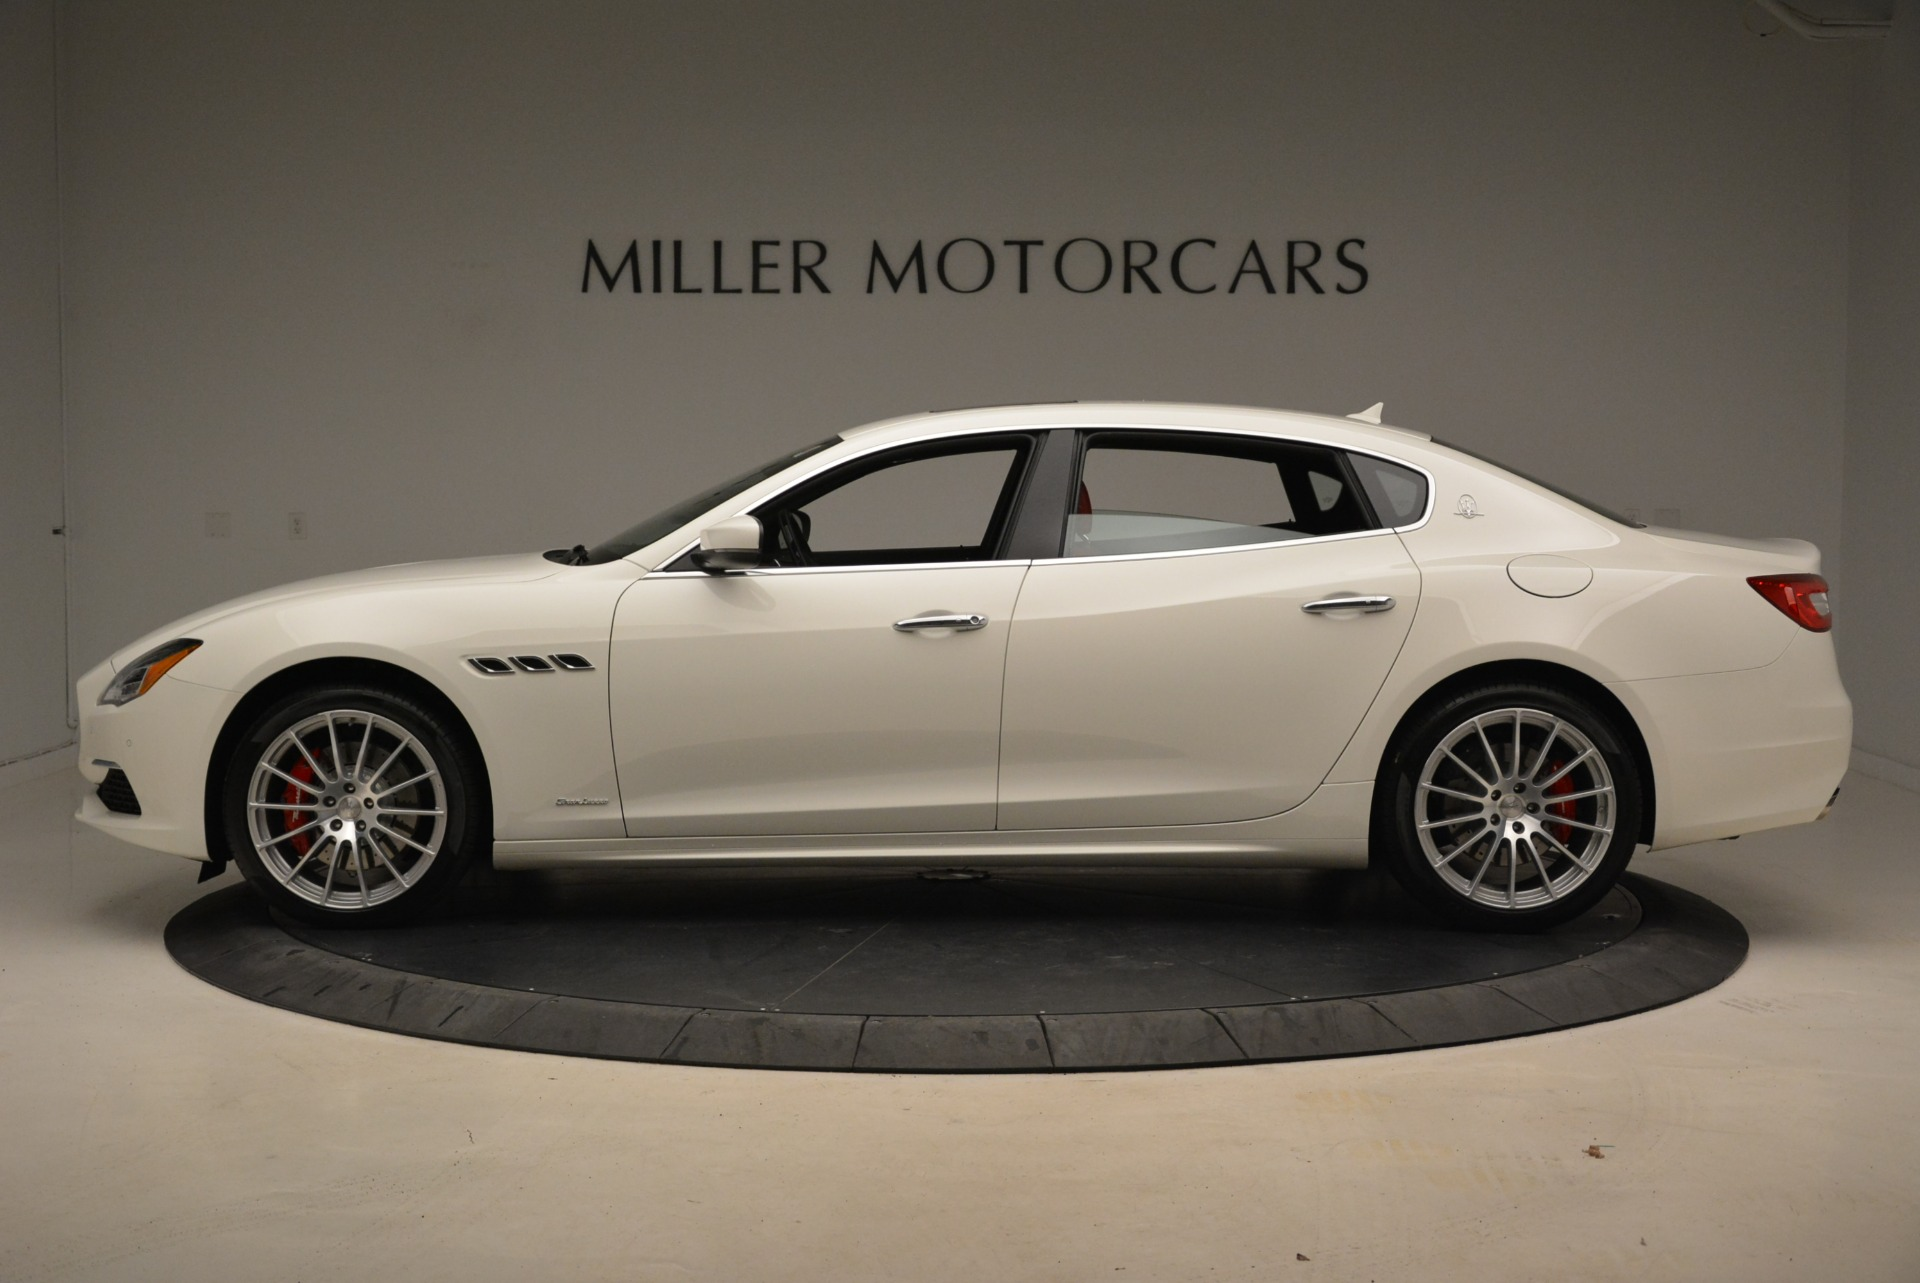 New 2018 Maserati Quattroporte S Q4 GranLusso For Sale In Westport, CT 2085_p4